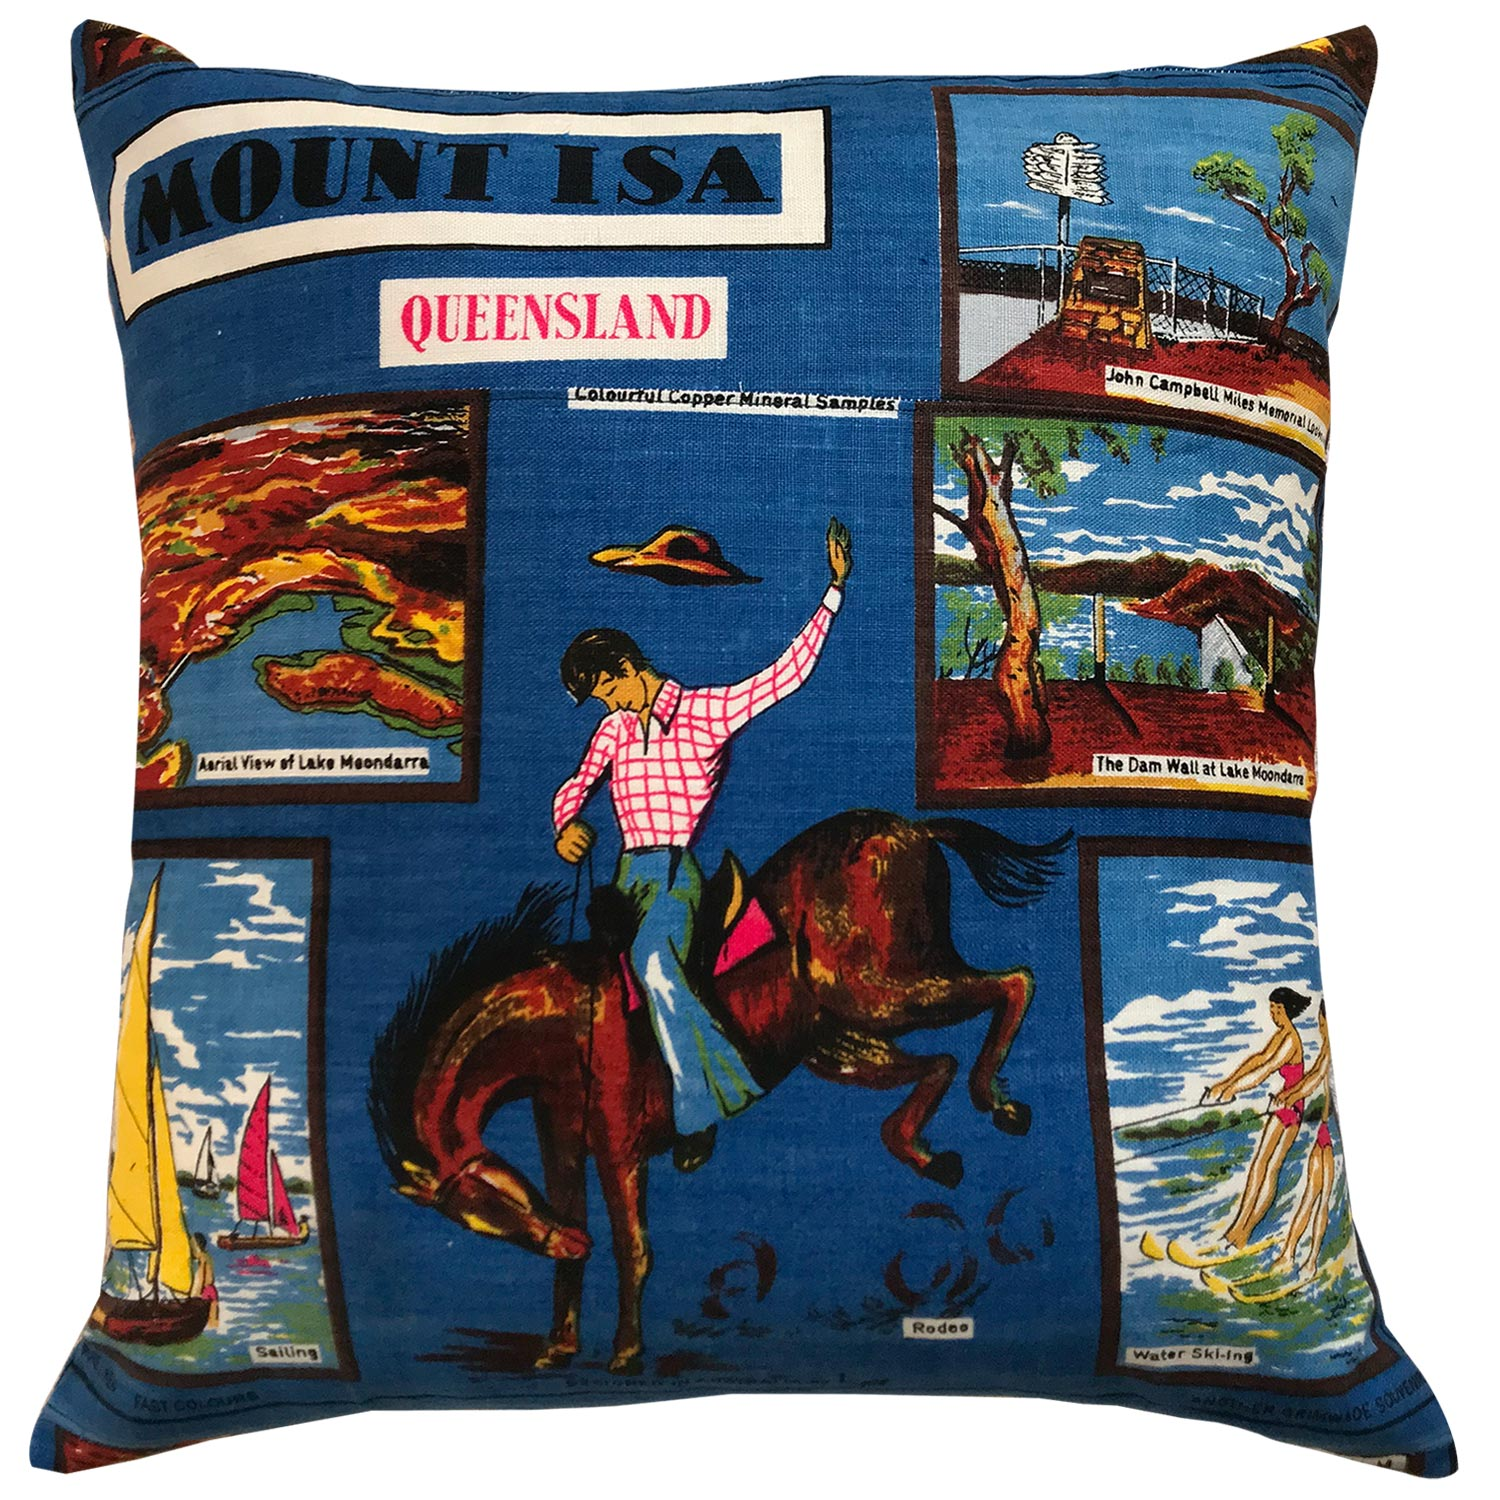 Mt Isa souvenir teatowel cushion cover